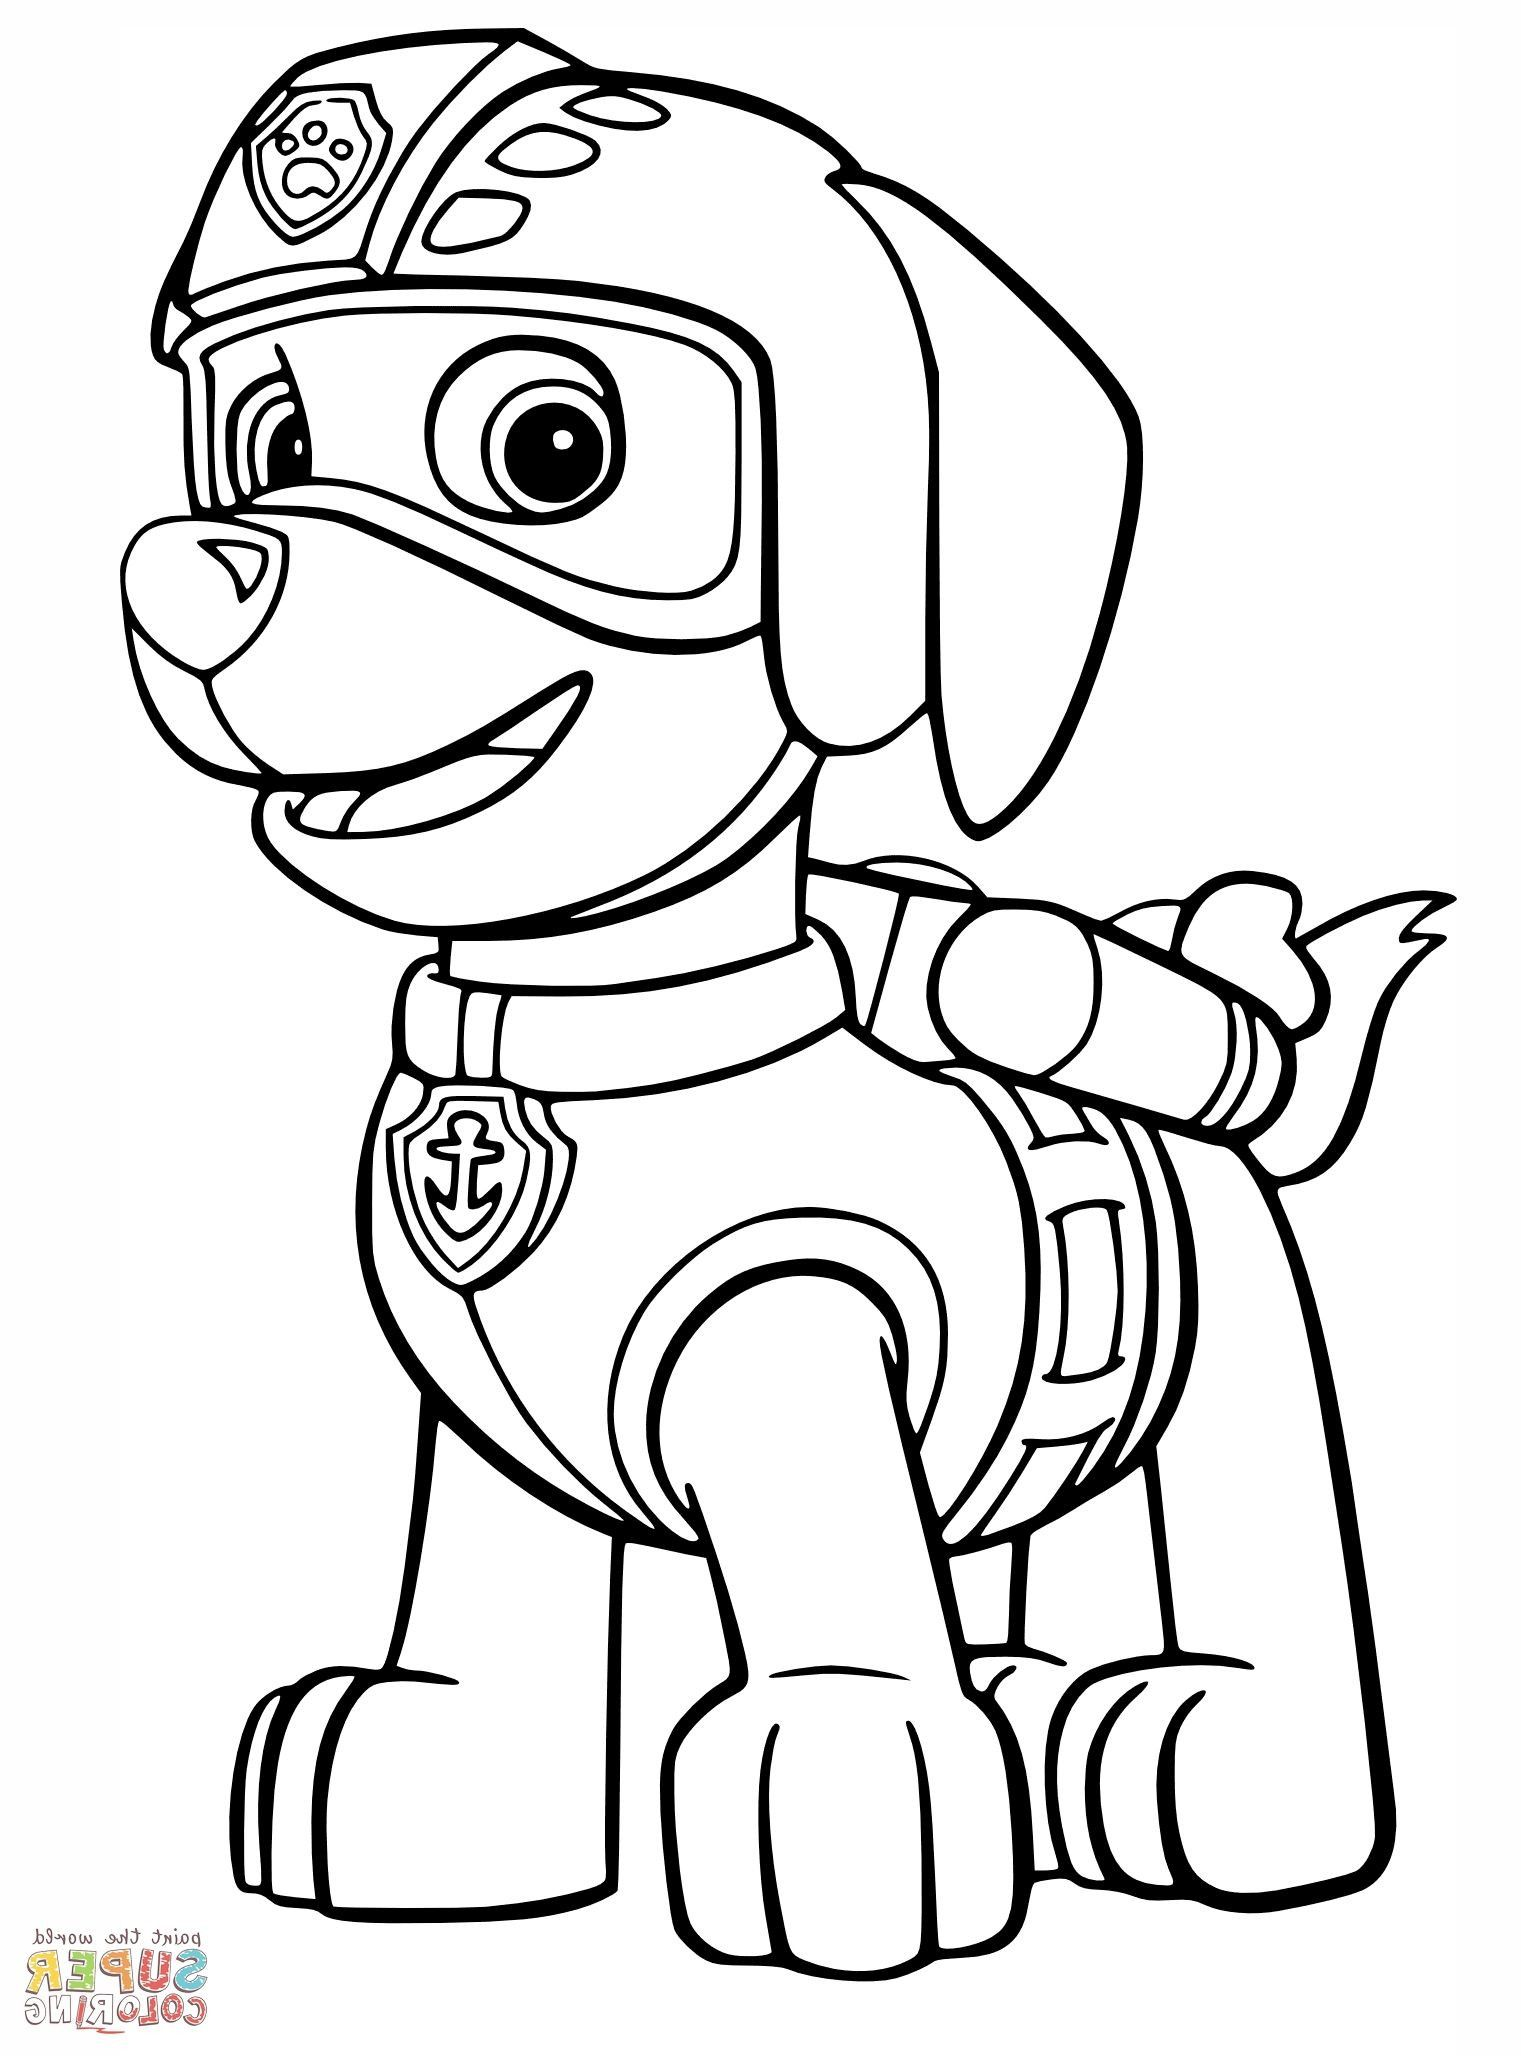 Paw Patrol Rocky Coloring Pages Free Paw Patrol Coloring Pages Paw Patrol Coloring Pages In 2021 Paw Patrol Coloring Paw Patrol Coloring Pages Paw Patrol Printables